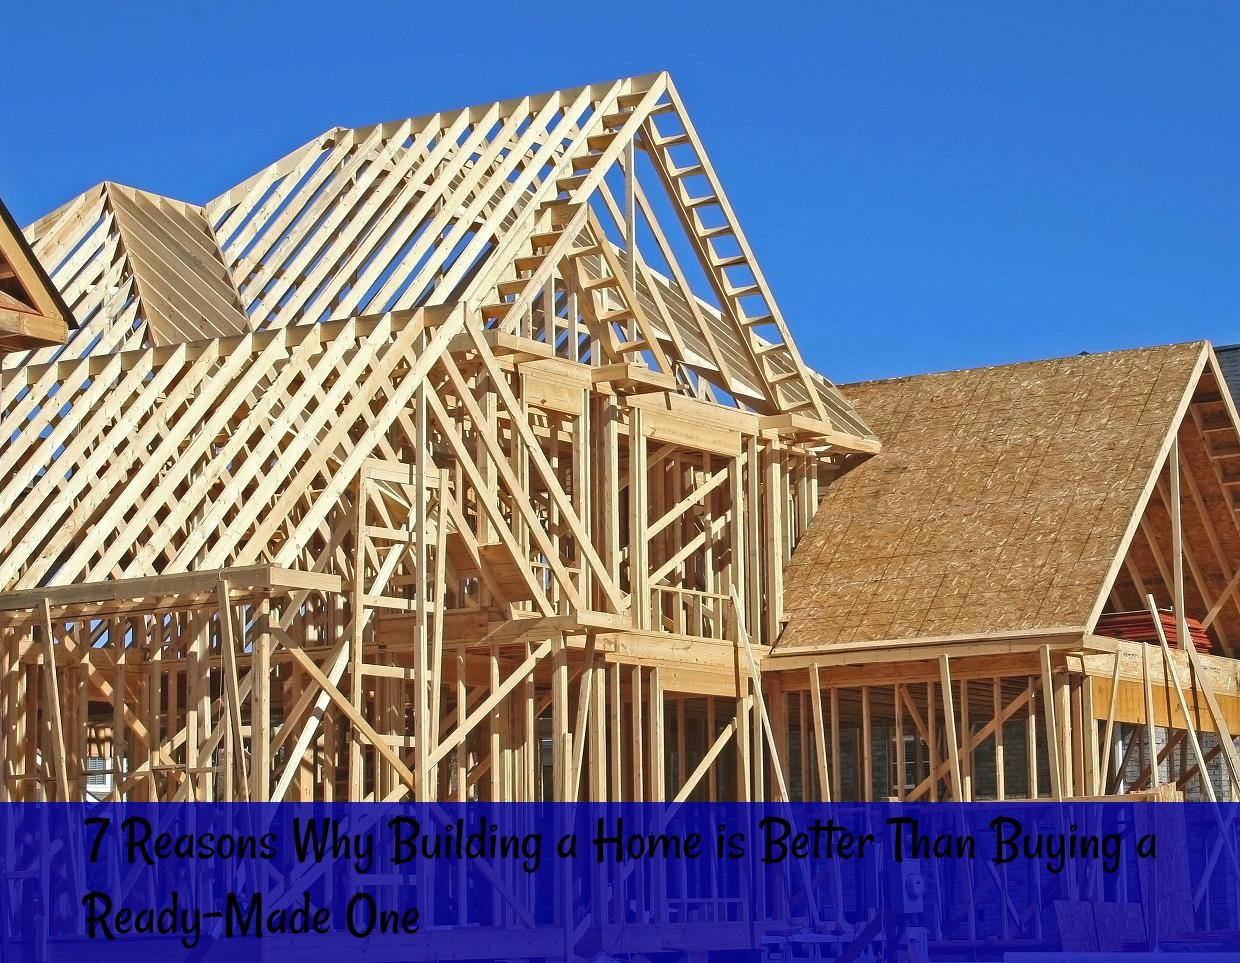 7 Reasons Why Building a Home is Better Than Buying a Ready-Made One